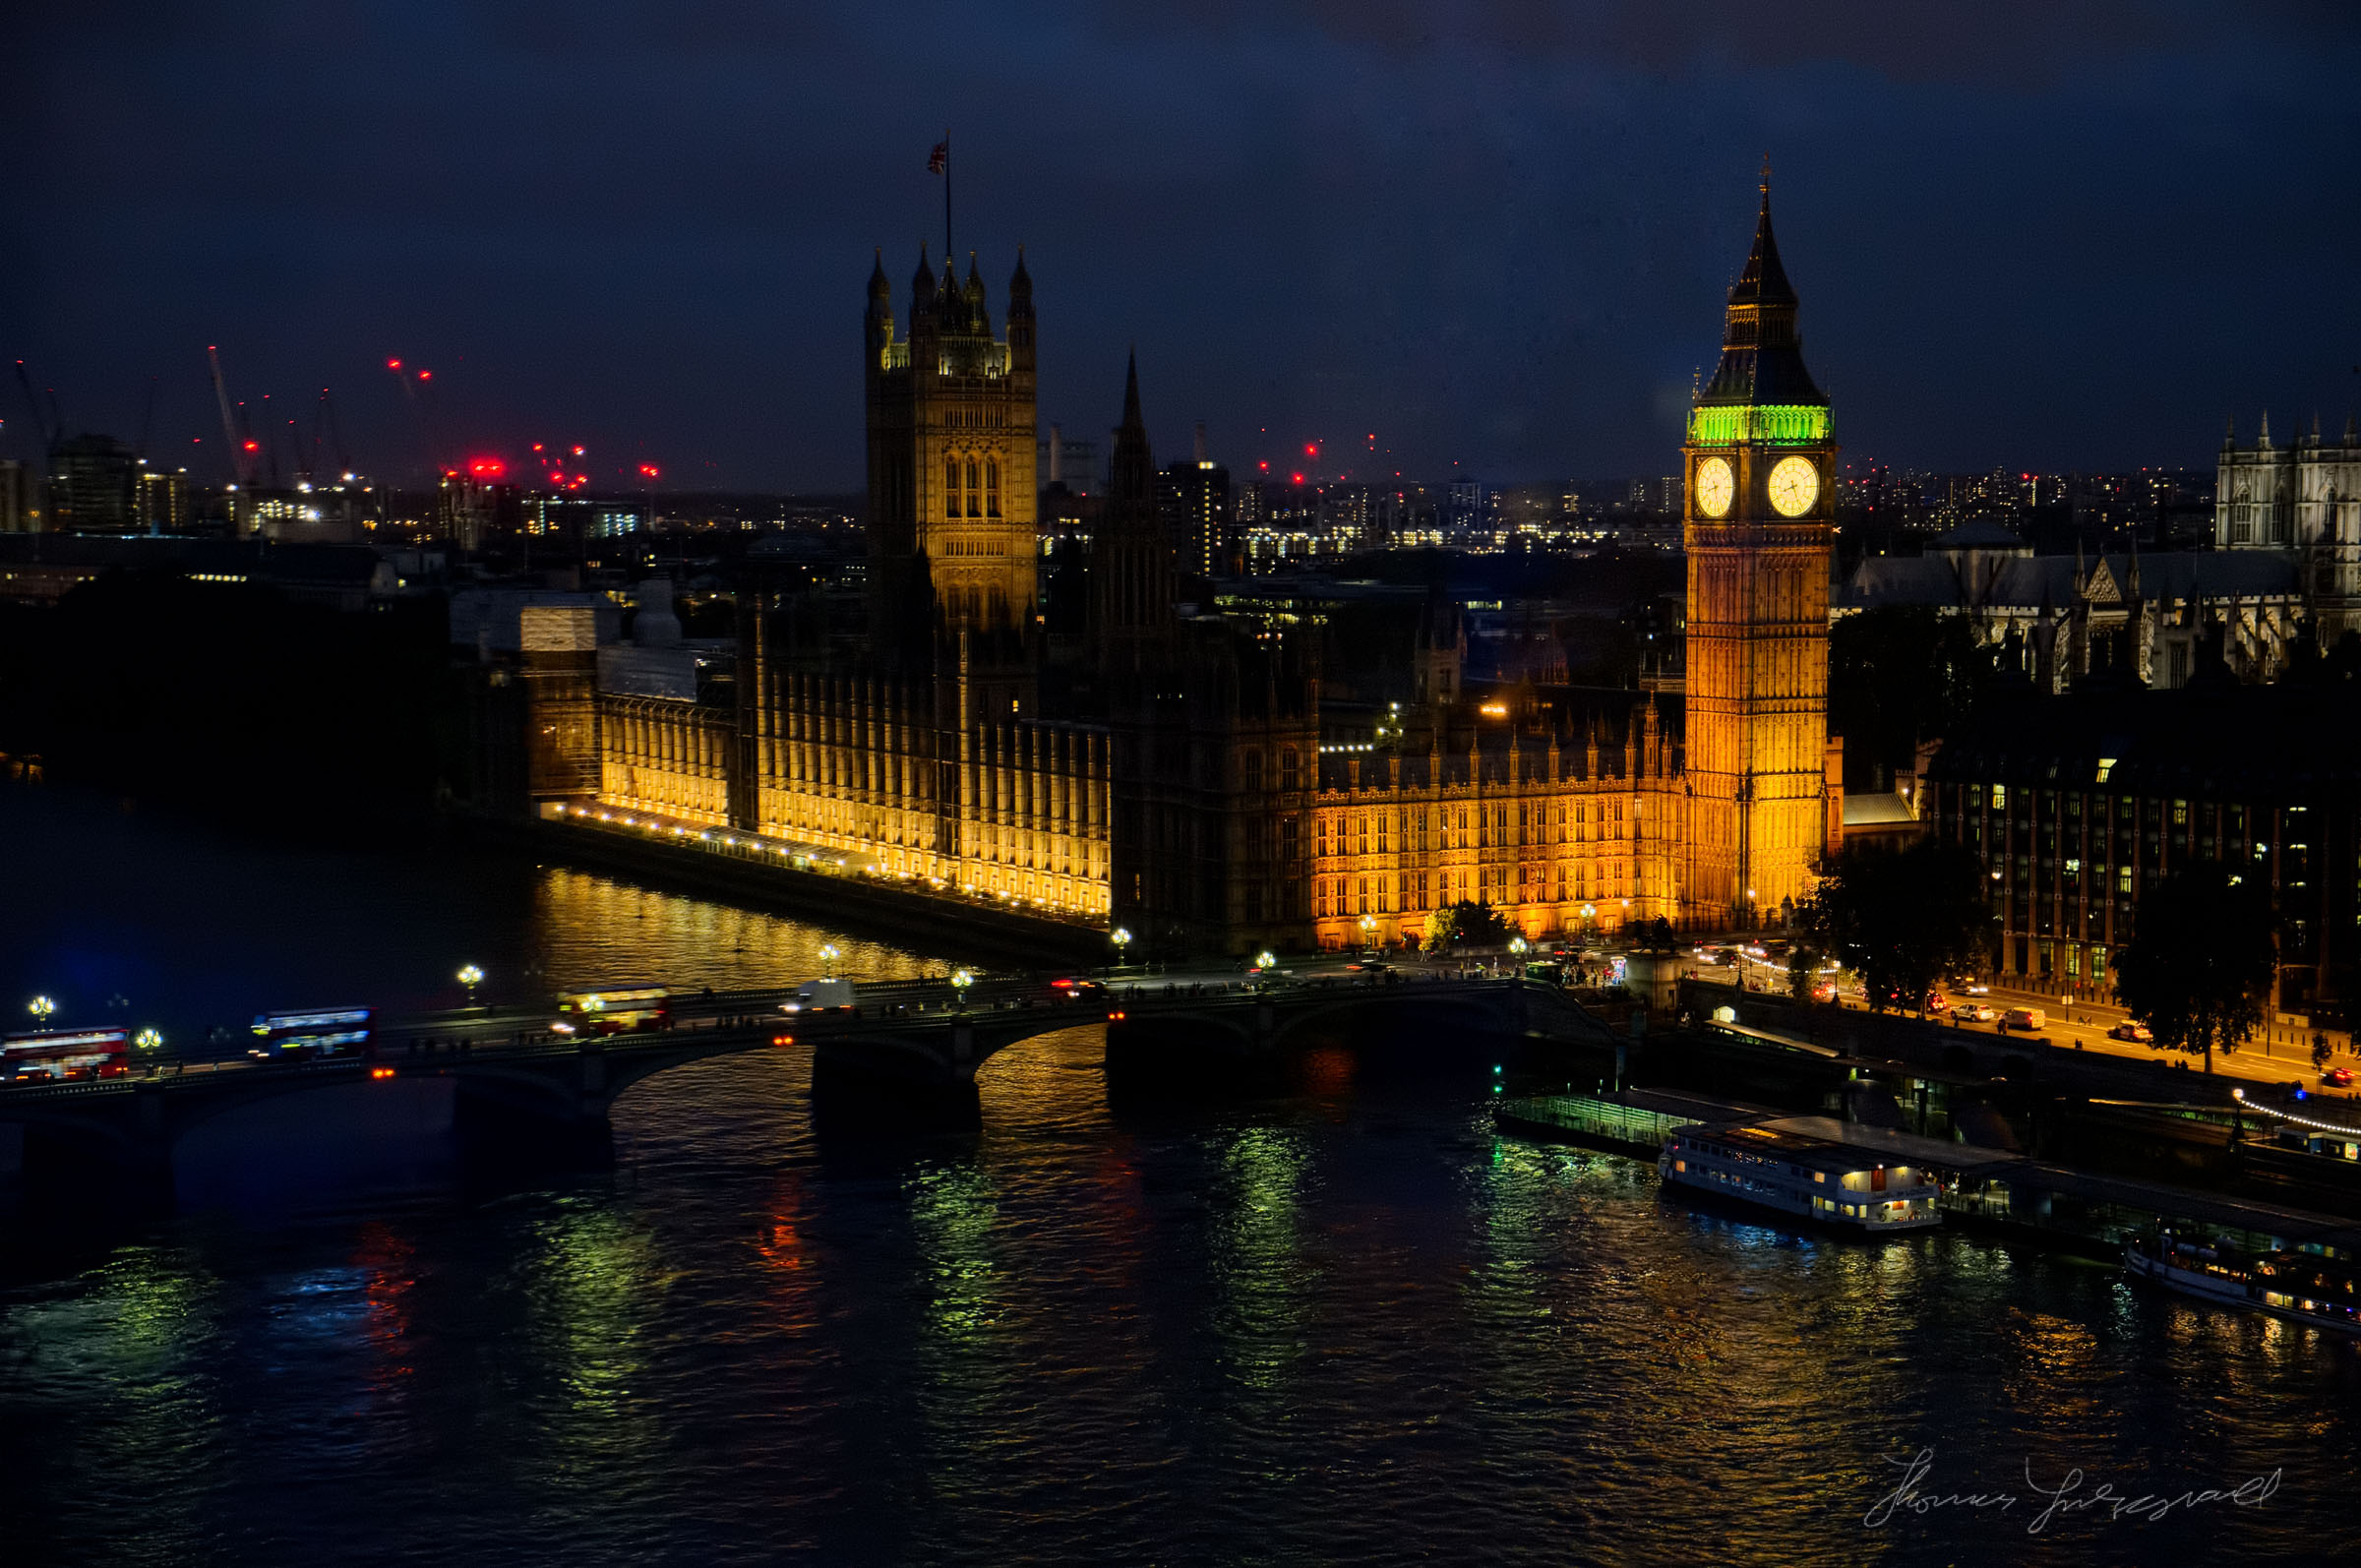 Big ben and Parliment at Dusk